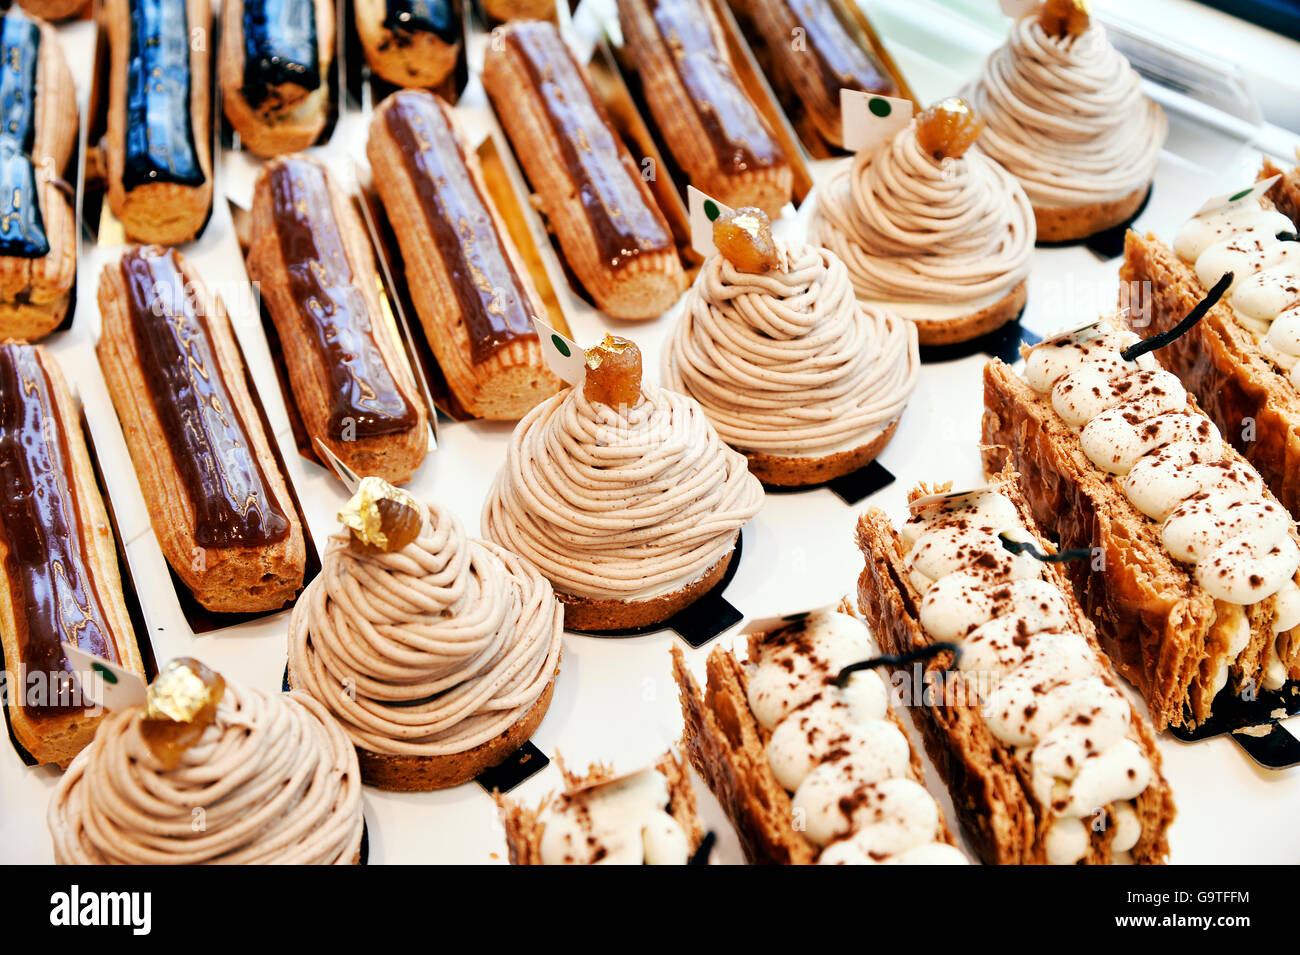 French Bakery, Paris 20th, Paris - Stock Image